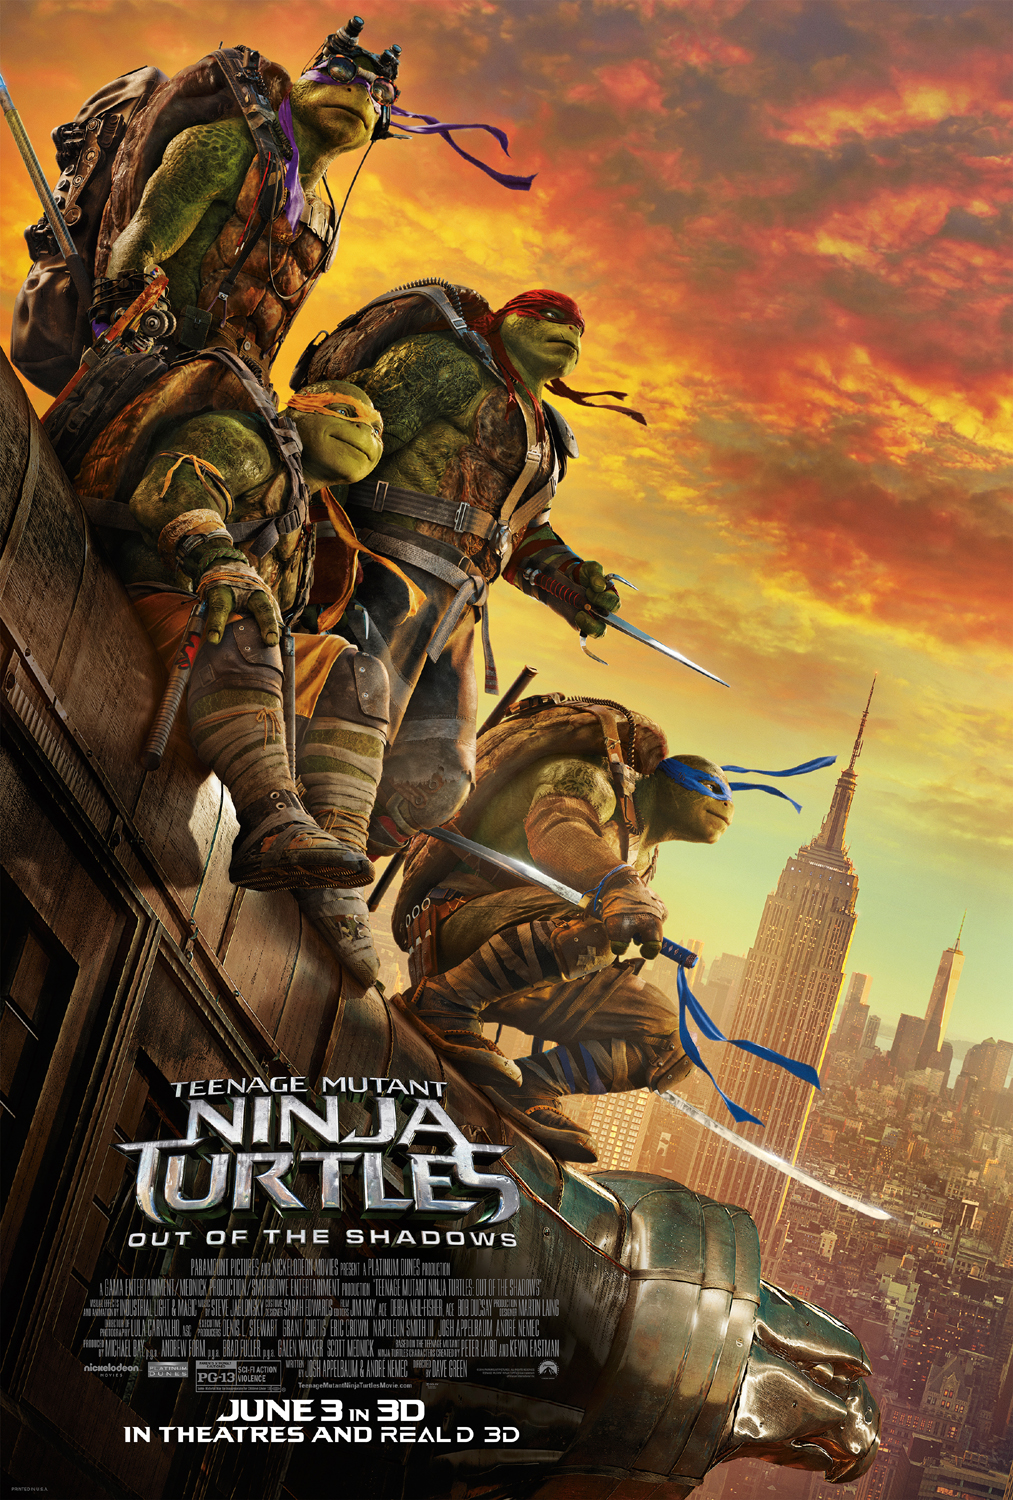 Teenage Muntant Ninja Turtles: Out of The Shadows